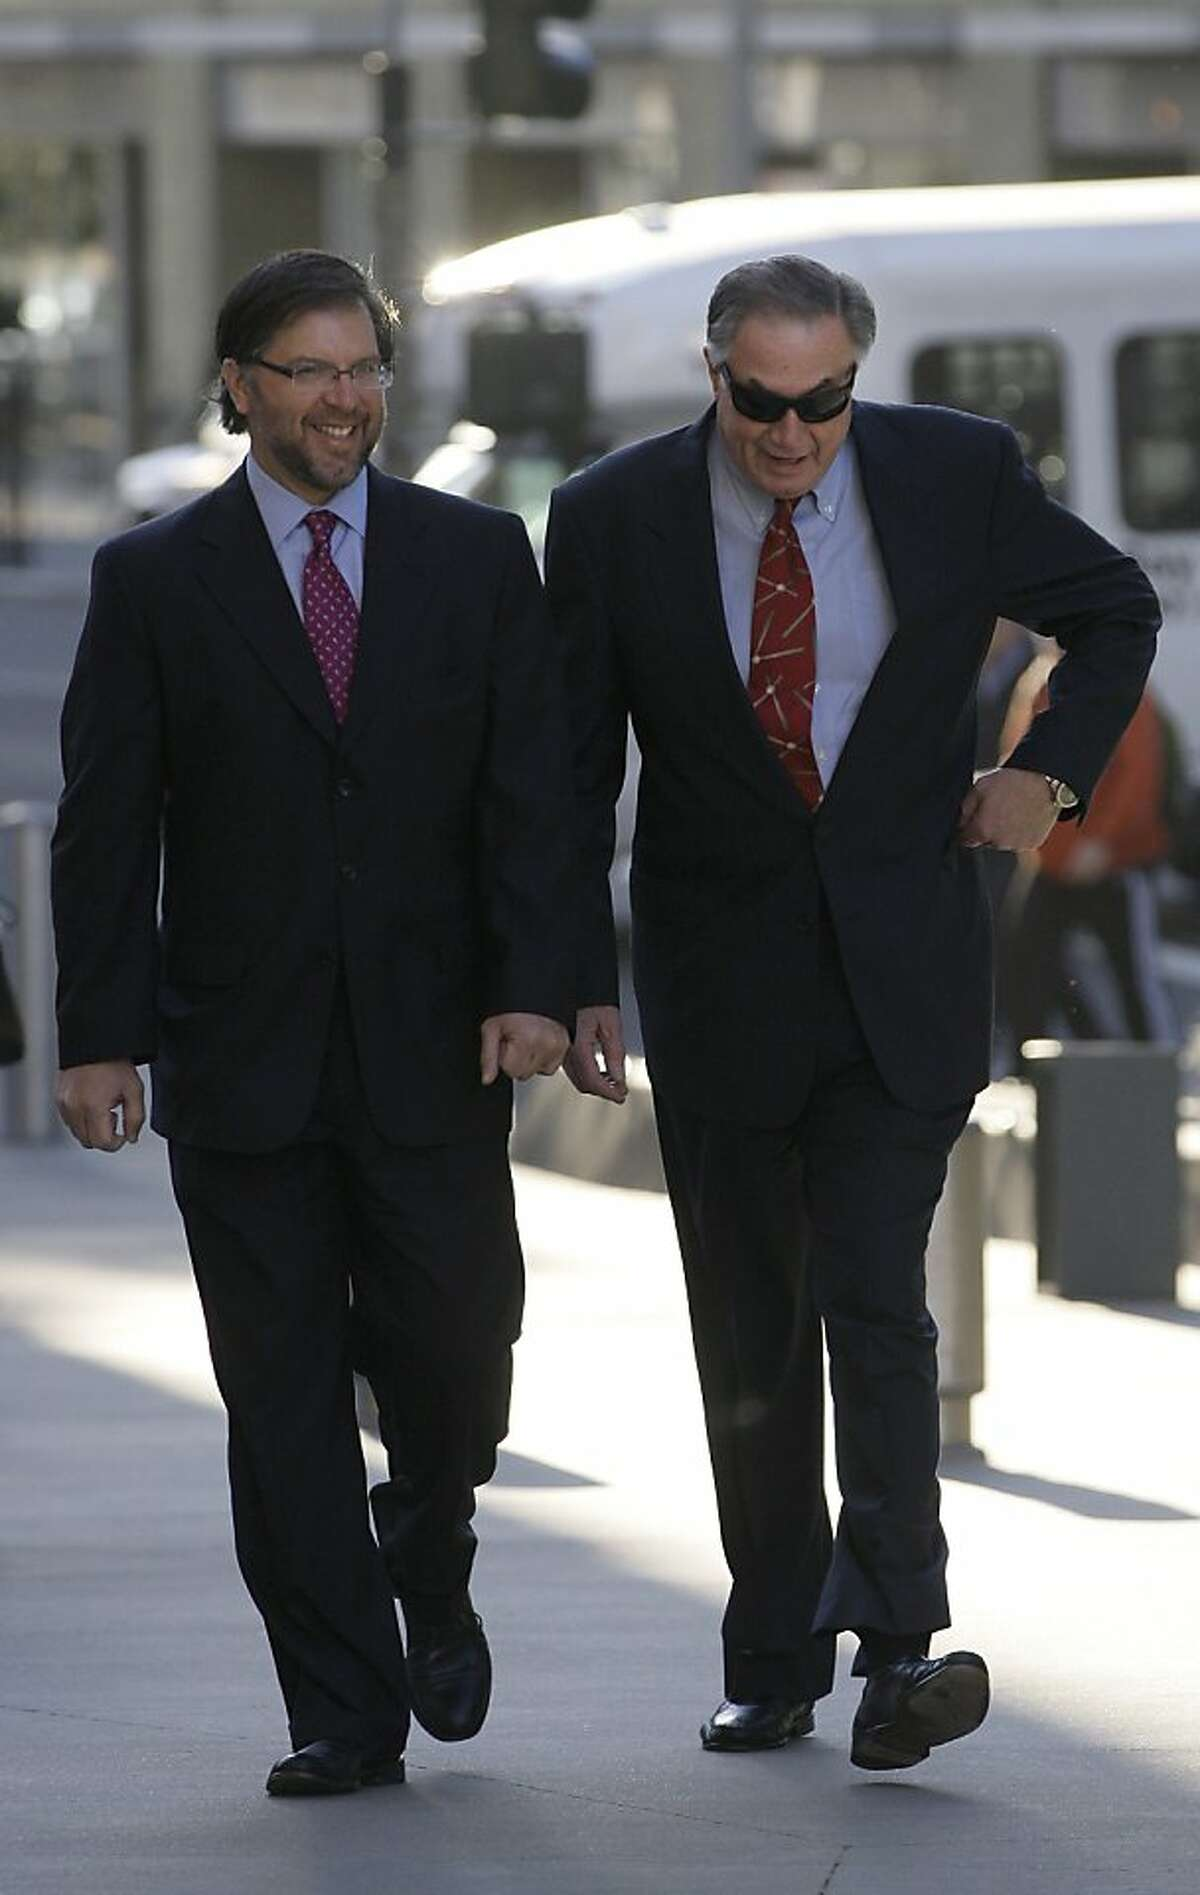 San Francisco Giants clubhouse manager Mike Murphy, right, arrives at federal court for the criminal trial of former baseball player Barry Bonds in San Francisco, Monday, March 28, 2011.